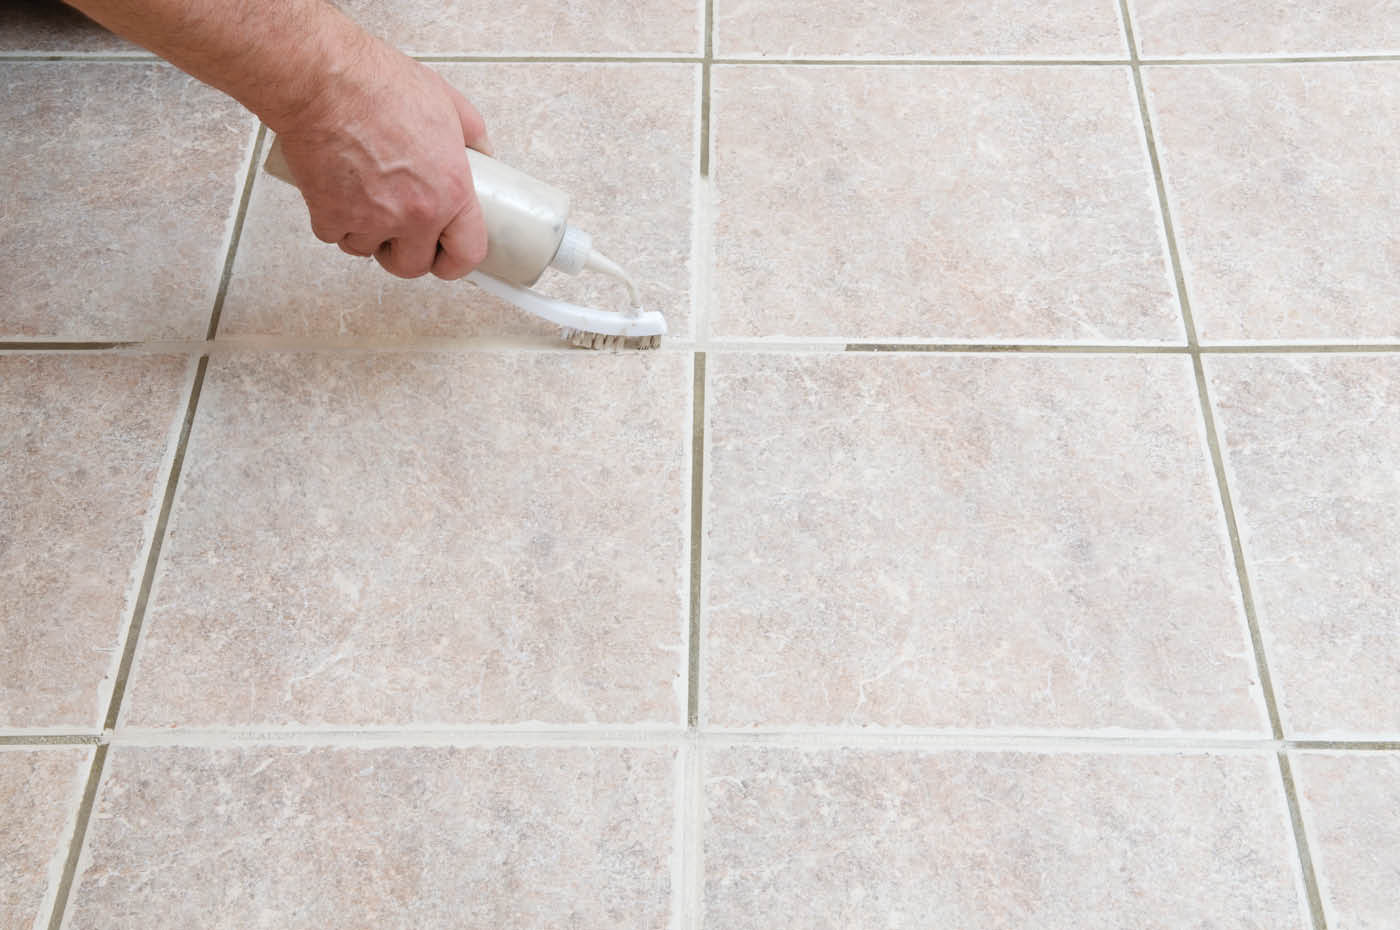 Simple routines to cleaning ceramic tile floors homesfeed cleaning ceramic tile floors grout cleaning with toothbrush for clean ceramic tile floors dailygadgetfo Image collections